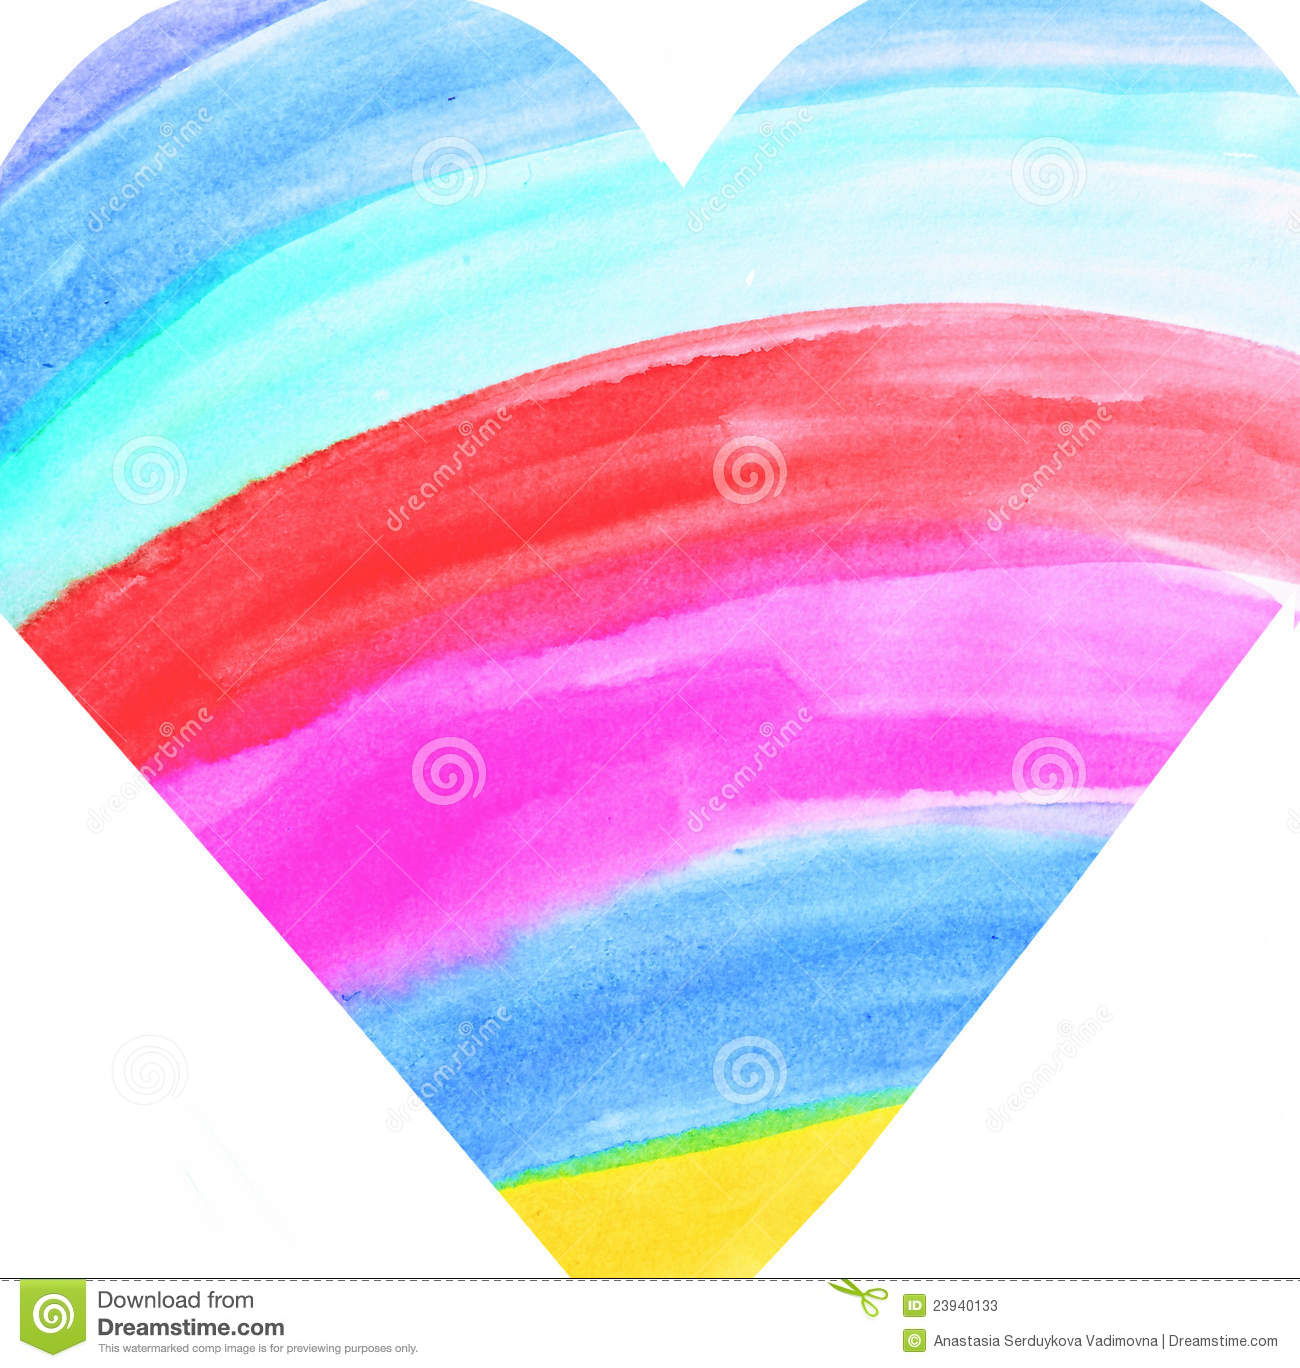 Symbol Of A Heart Coloured Like A Rainbow Stock Illustration